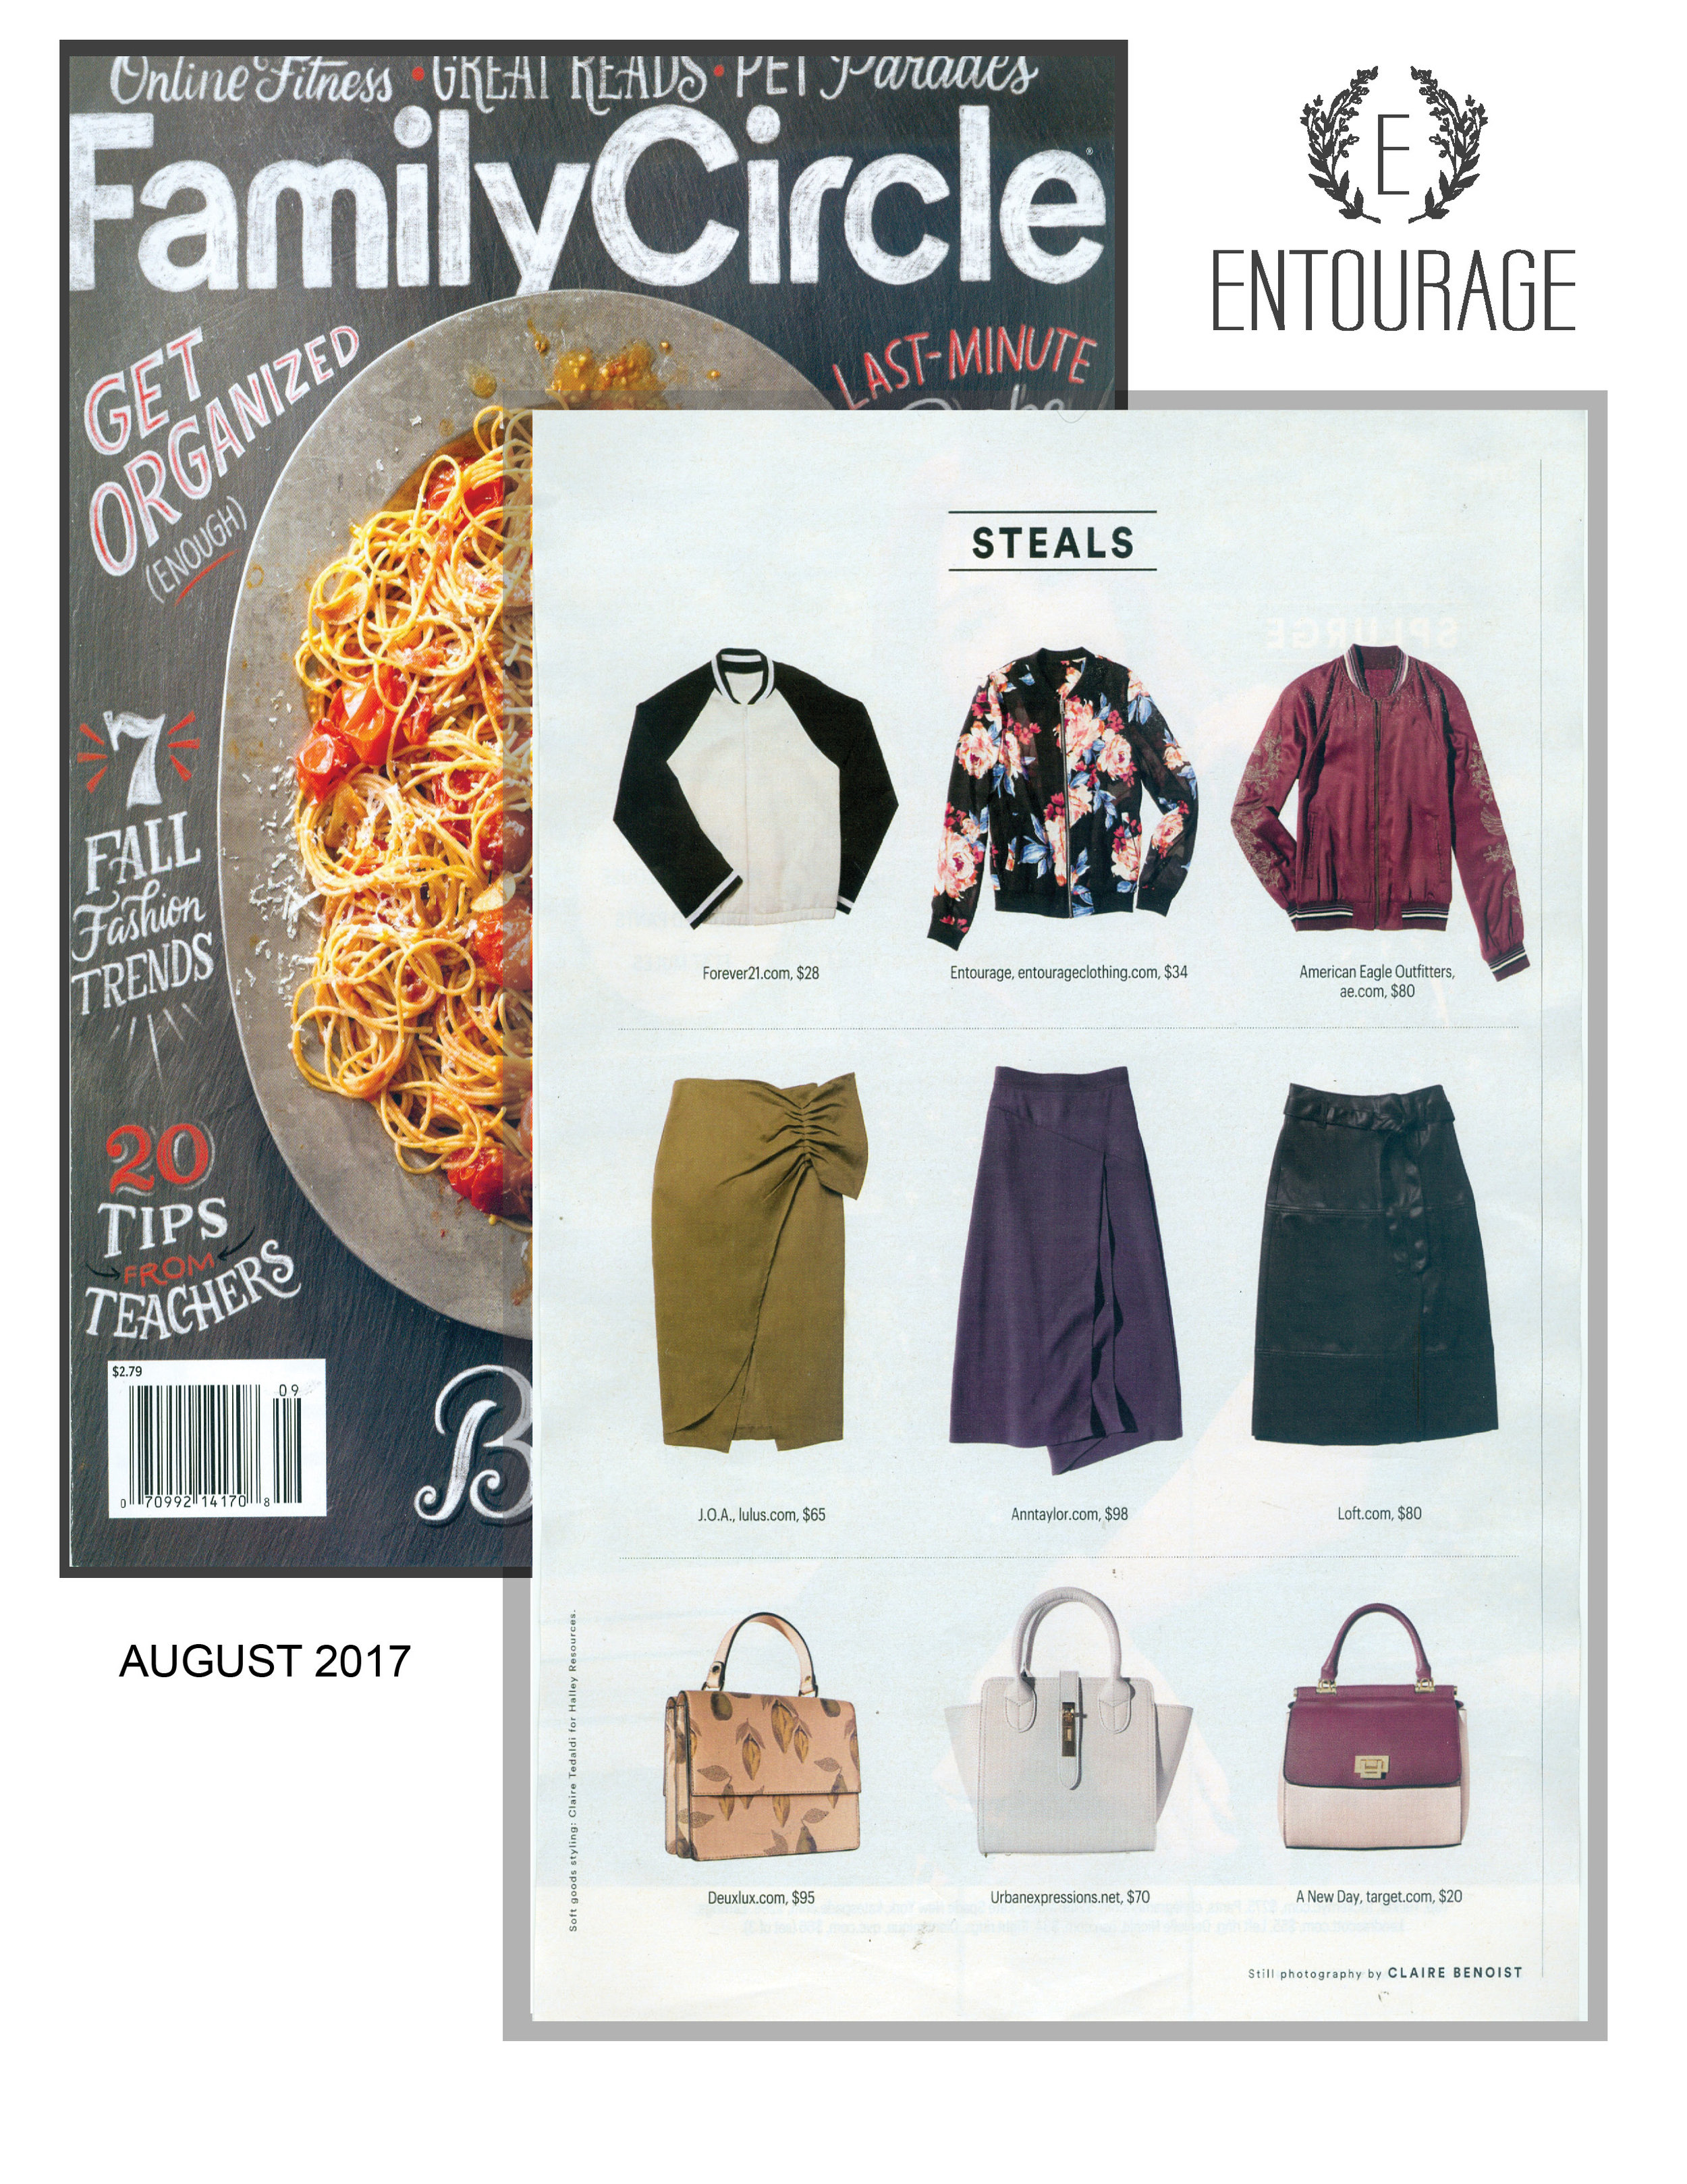 Entourage_FamilyCircle_August2017.jpg